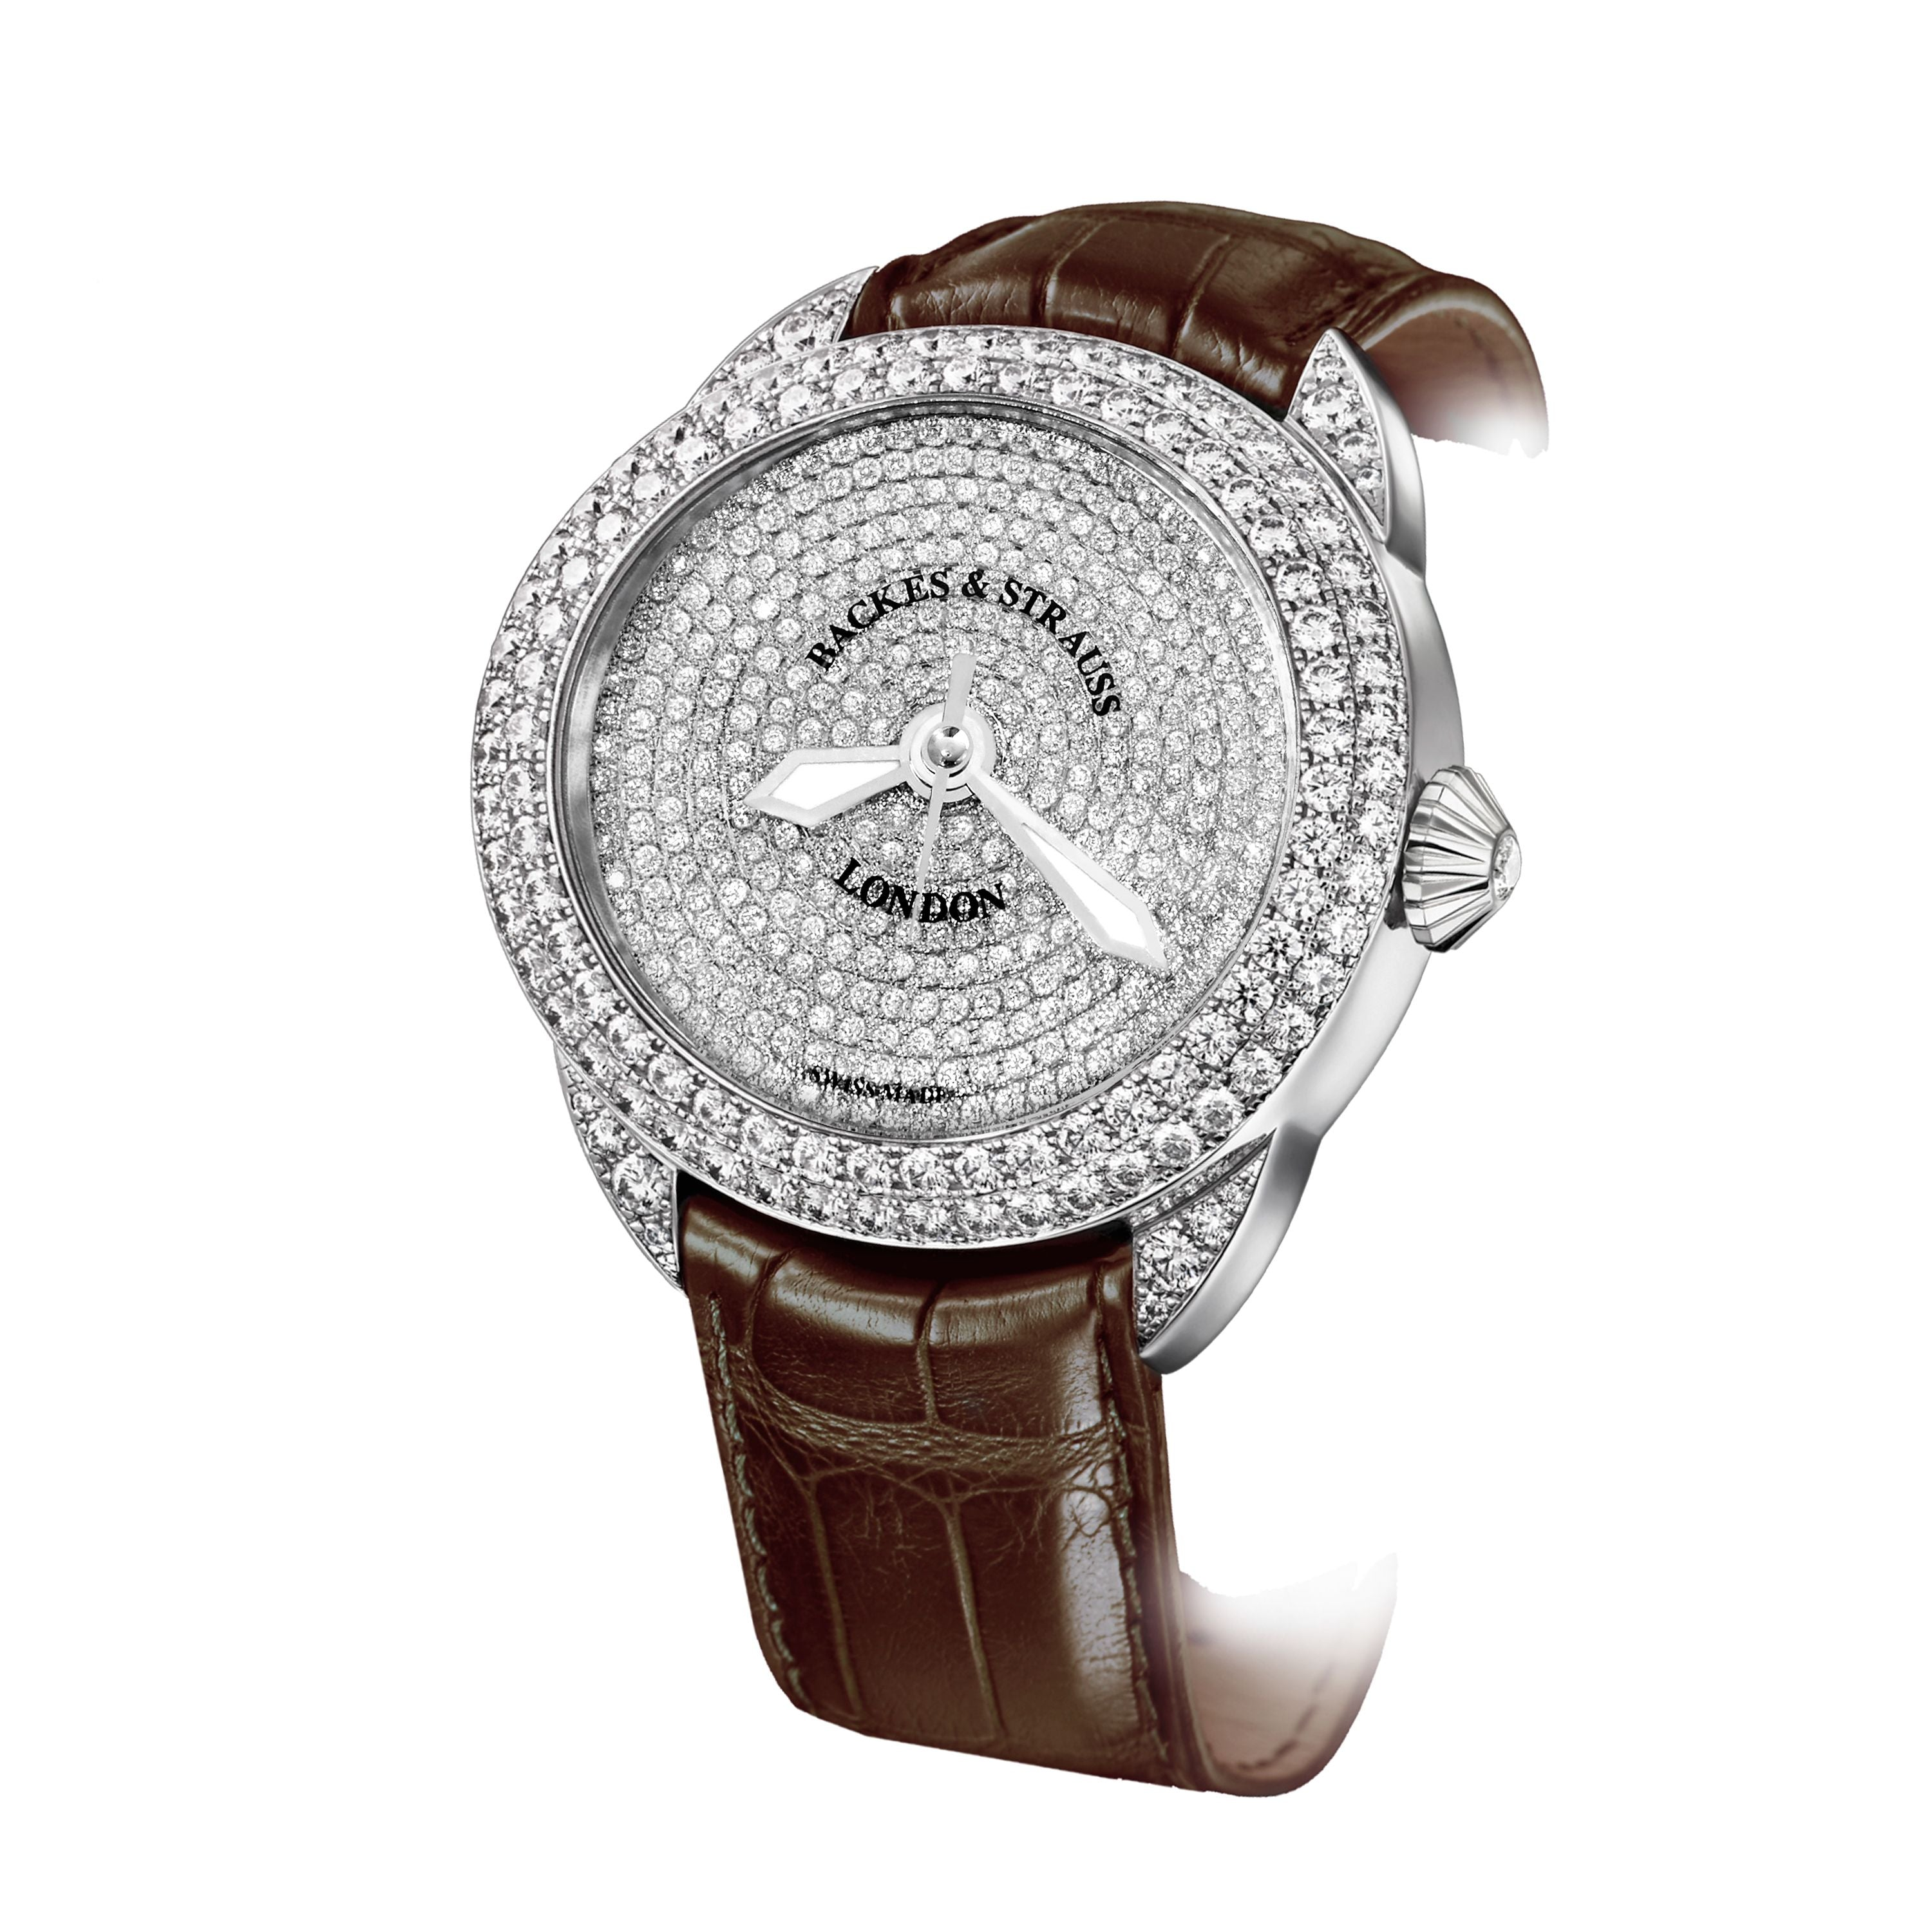 Piccadilly 45 Luxury Diamond Watch for Men and Women - 45 mm White Gold - Backes & Strauss